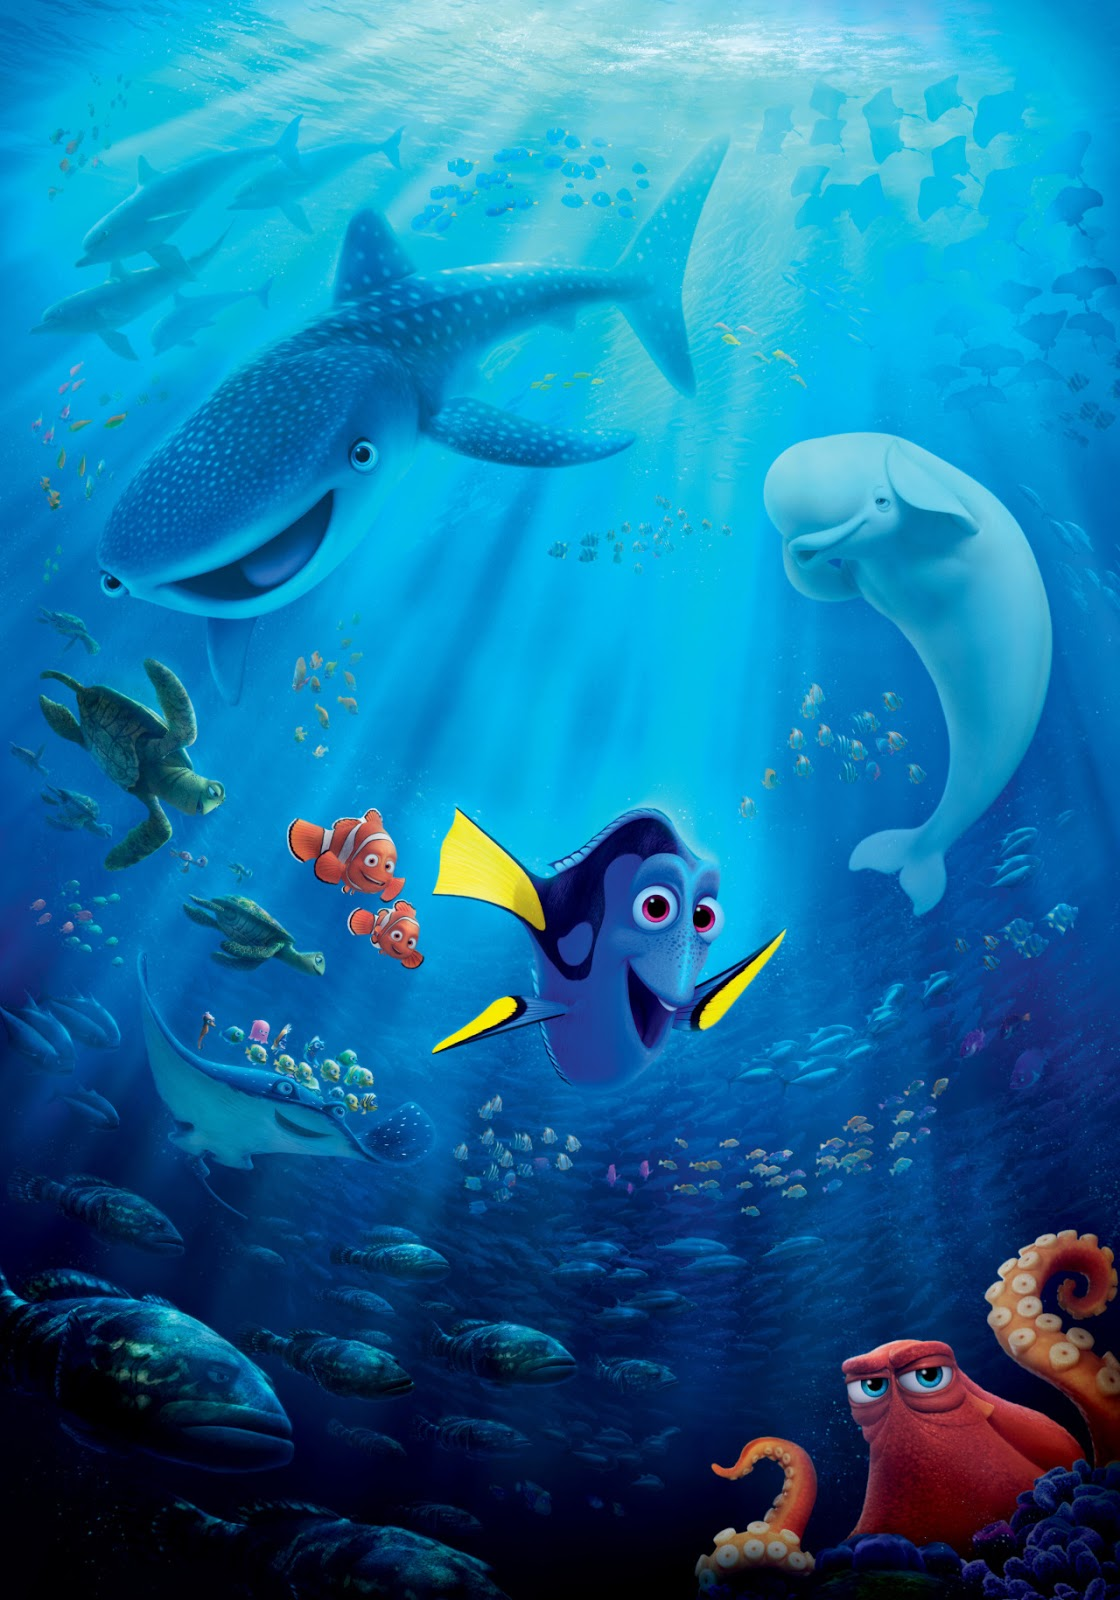 The Sealifebase Project Finding Dory Insights From